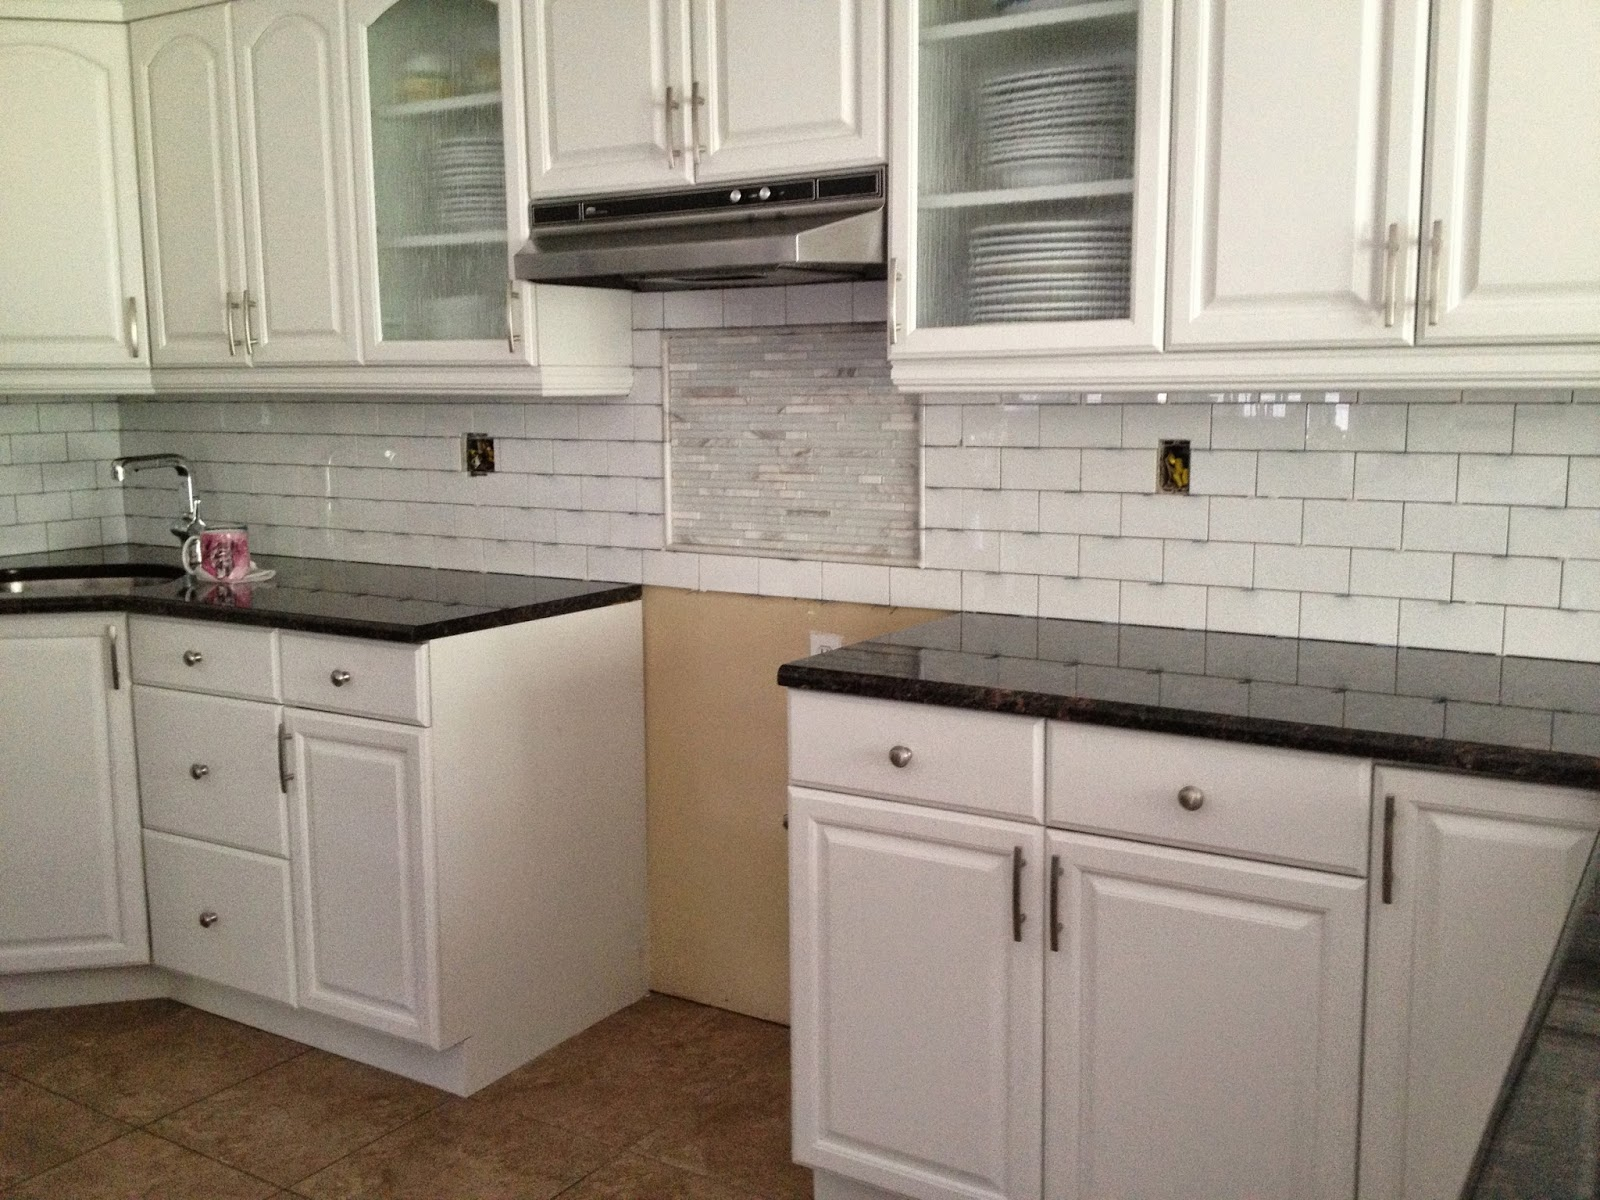 What Is Sheetrock Above Kitchen Cabinets Called